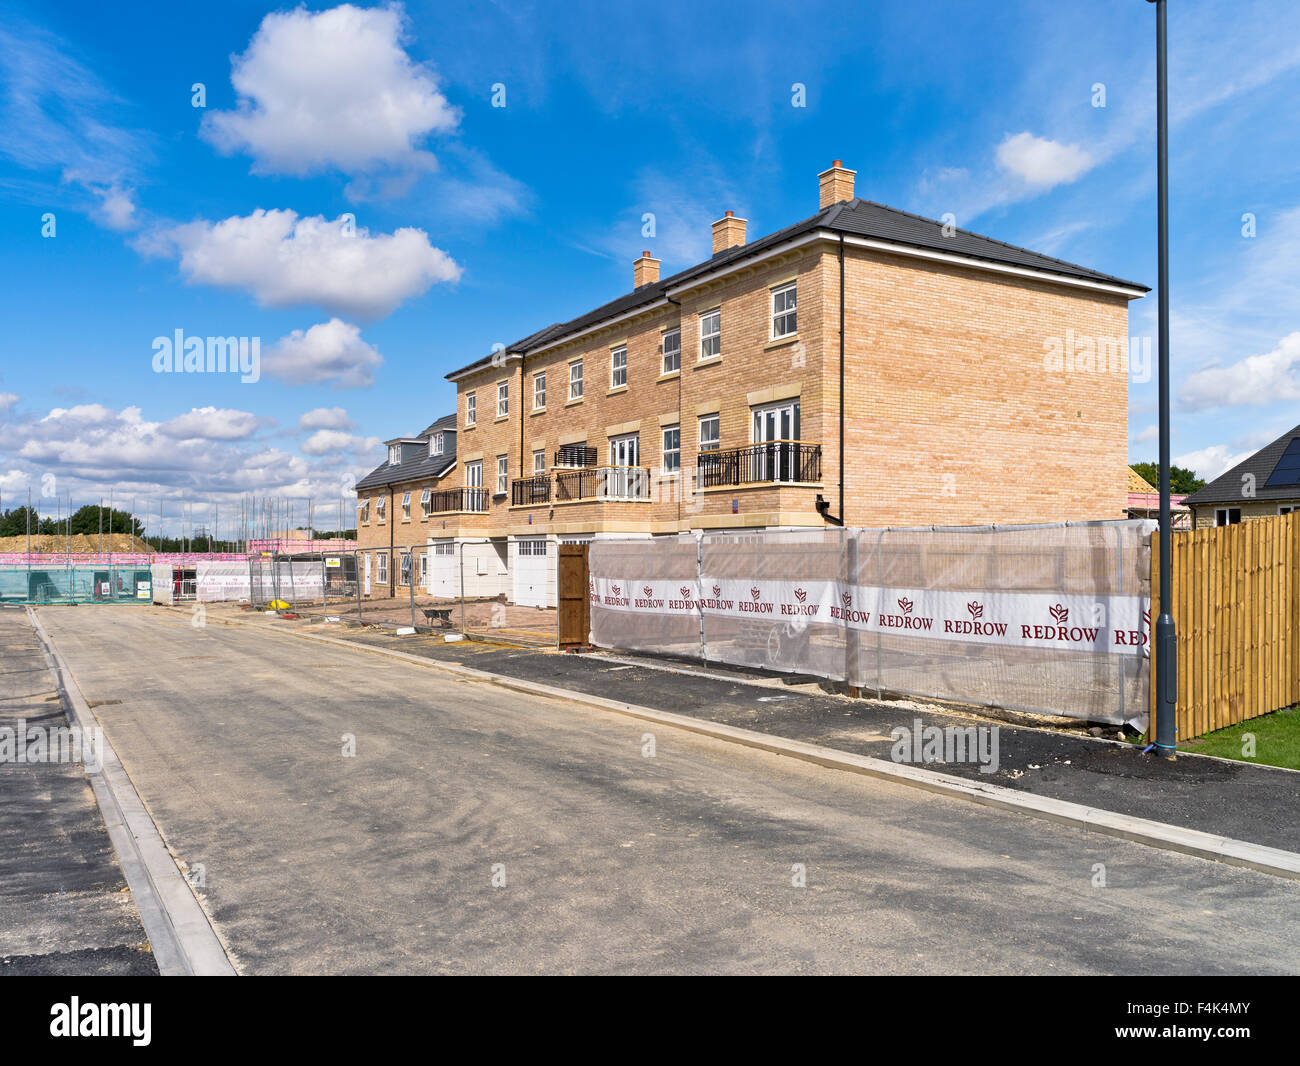 Dh redrow homes uk new houses uk building site flats homes for Building site house